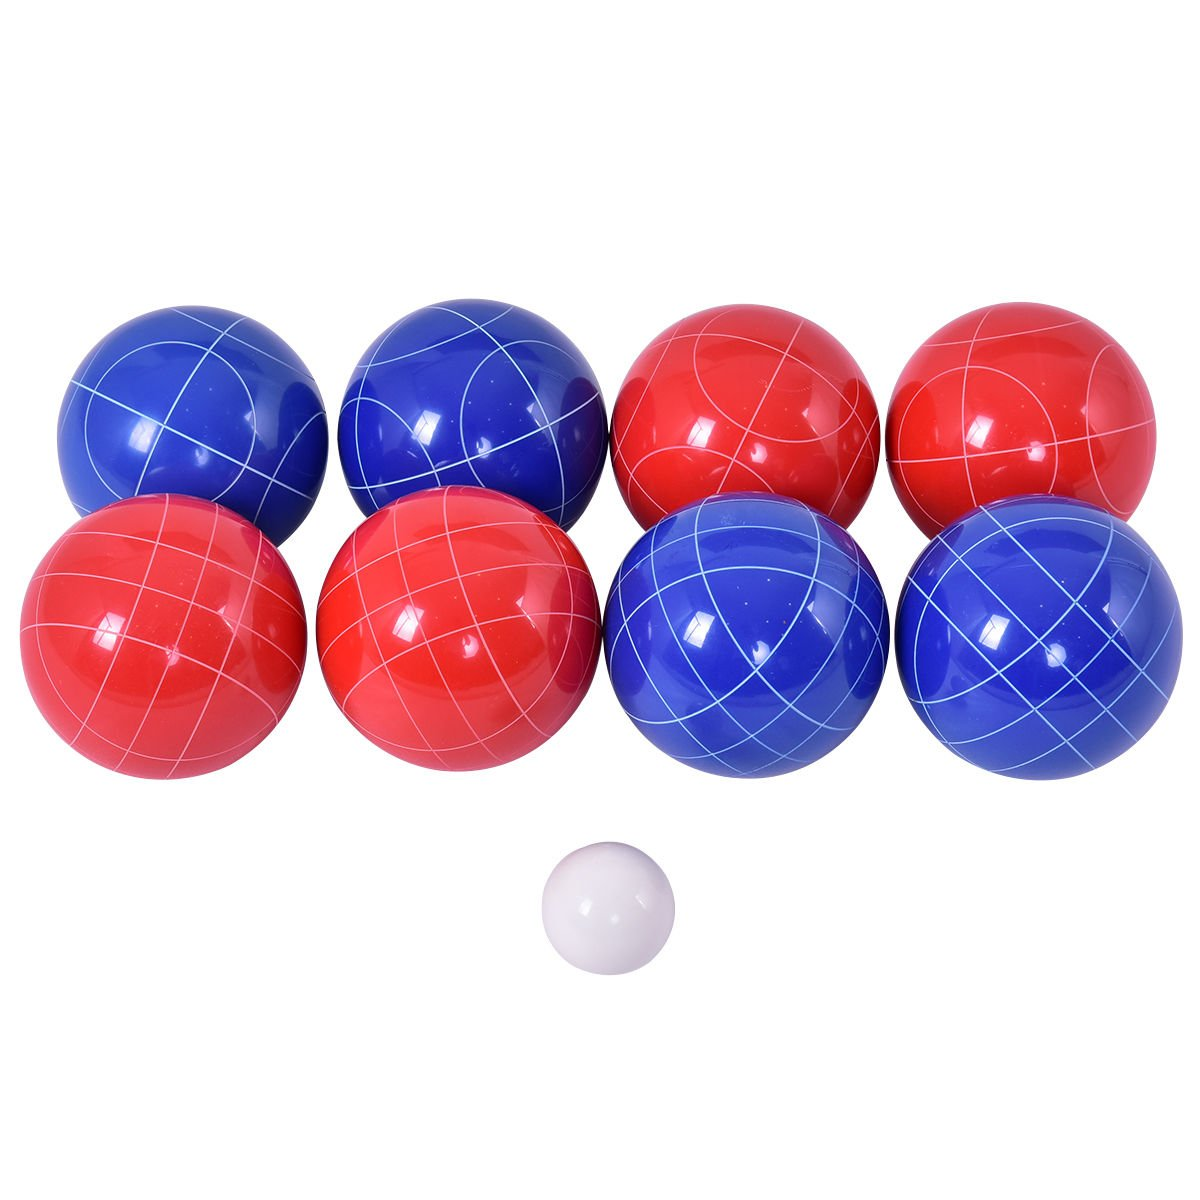 FDInspiration Outdoor Grassy Bocce Ball Backyard Sport w/Set 8 Red & Blue Balls Pallino by FDInspiration